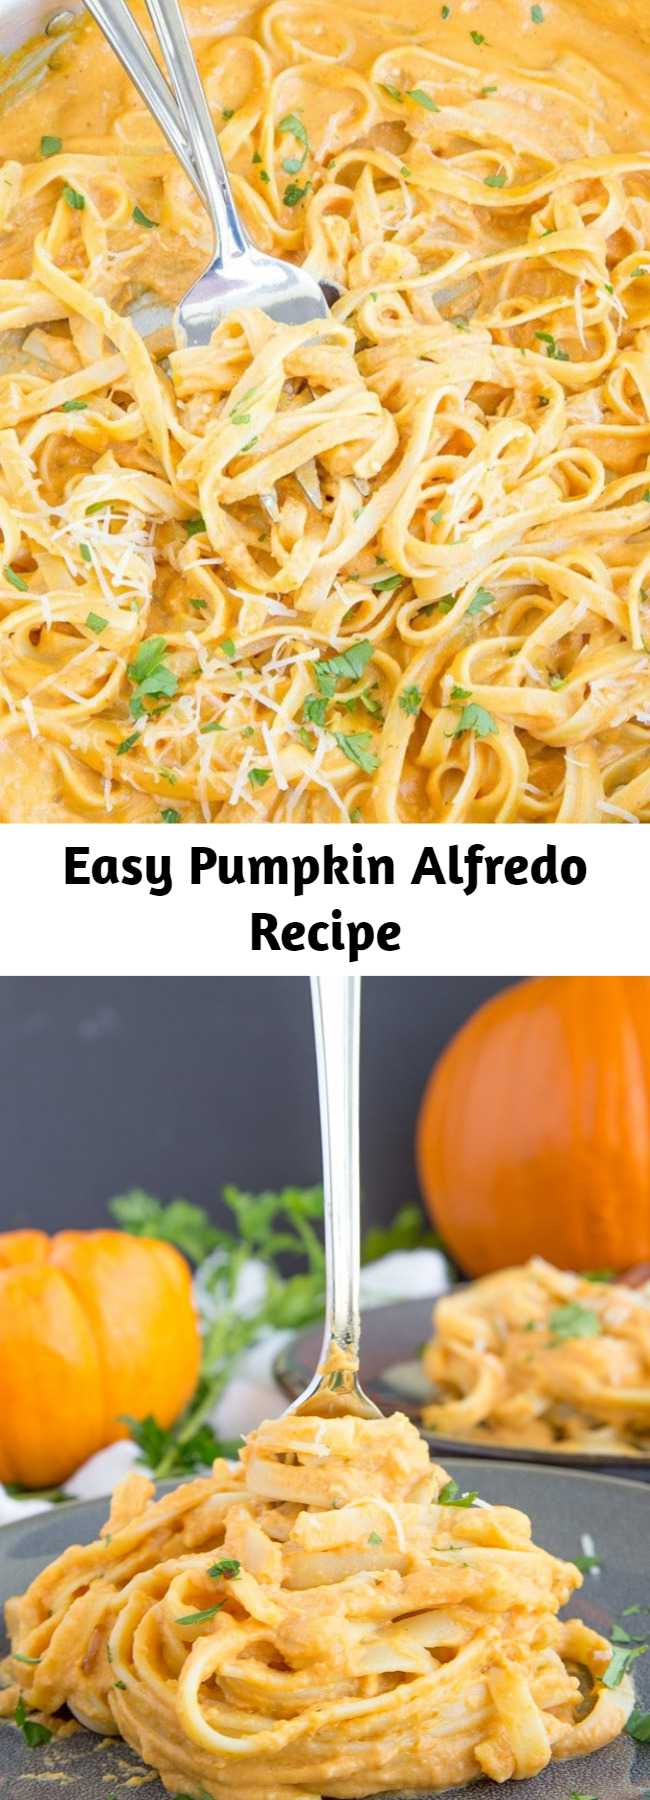 Easy Pumpkin Alfredo Recipe - This Pumpkin Alfredo is creamy, rich and delicious, and without all the calories and fat of a regular Alfredo sauce. A perfect fall dinner that's easy enough for a weeknight meal and you'll never miss the cream! - pumpkin recipes for the win!